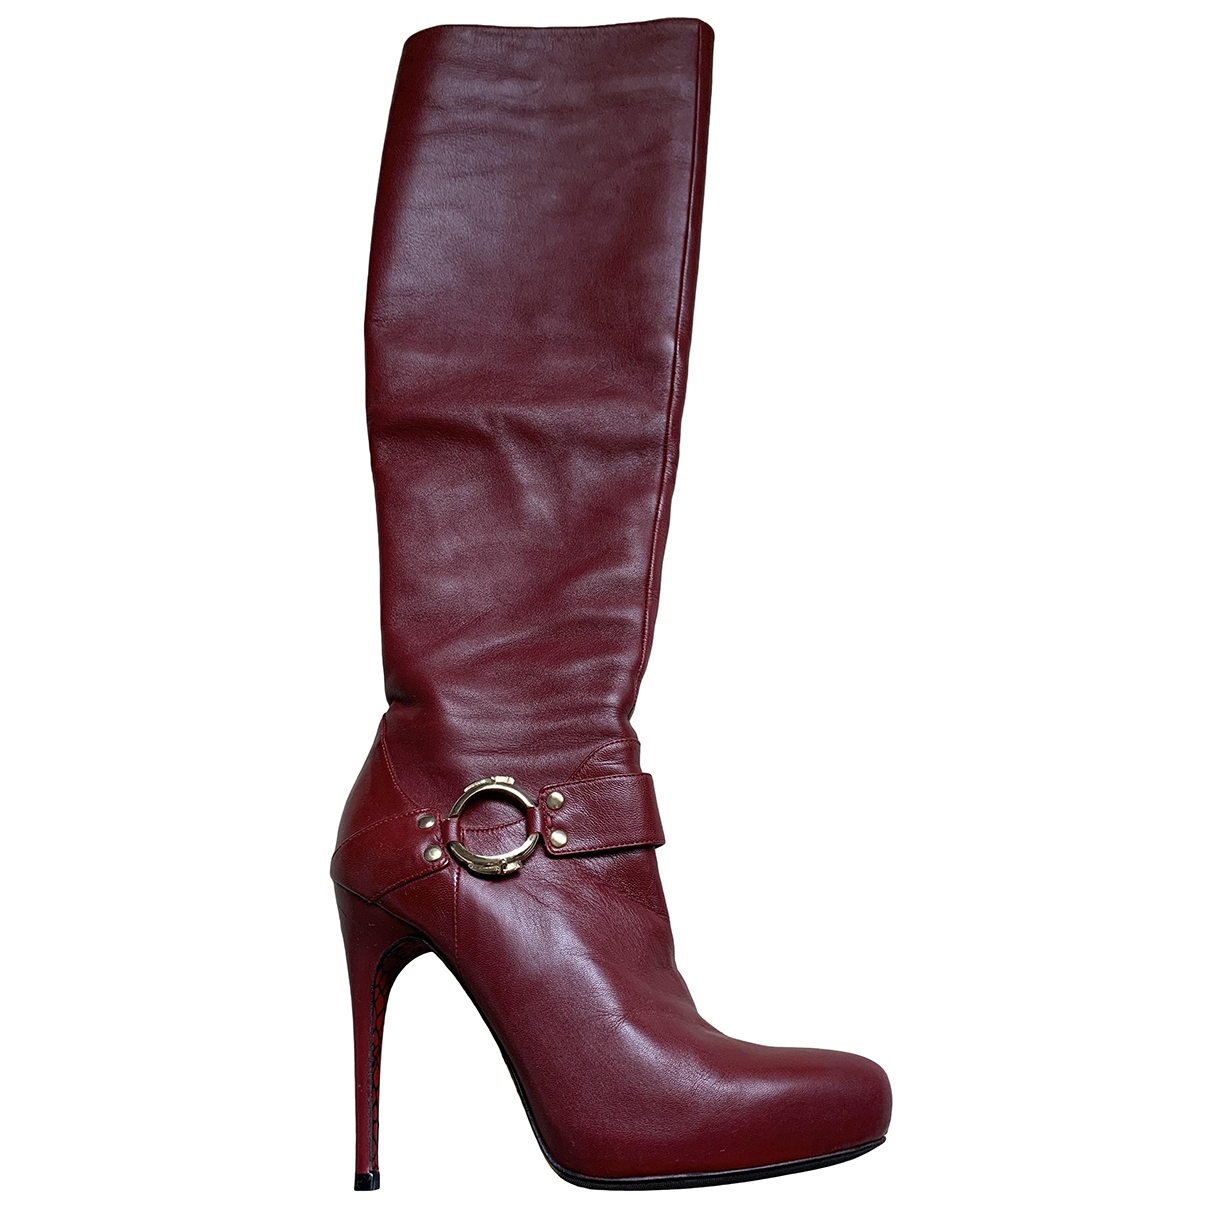 Cesare Paciotti \N Burgundy Leather Boots for Women 37 EU